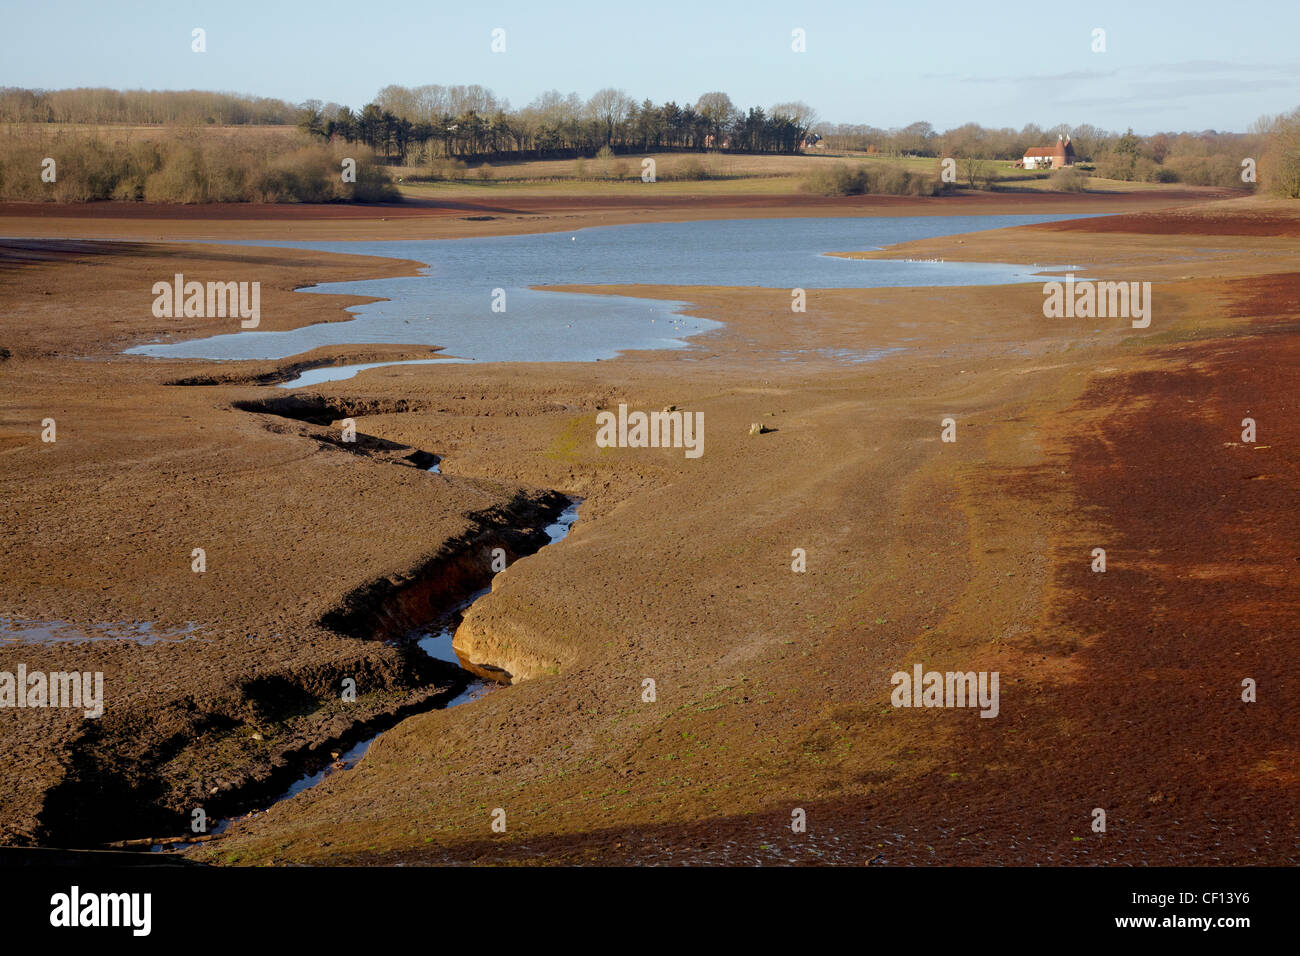 Bewl reservoir in drought conditions with very low water level - Stock Image